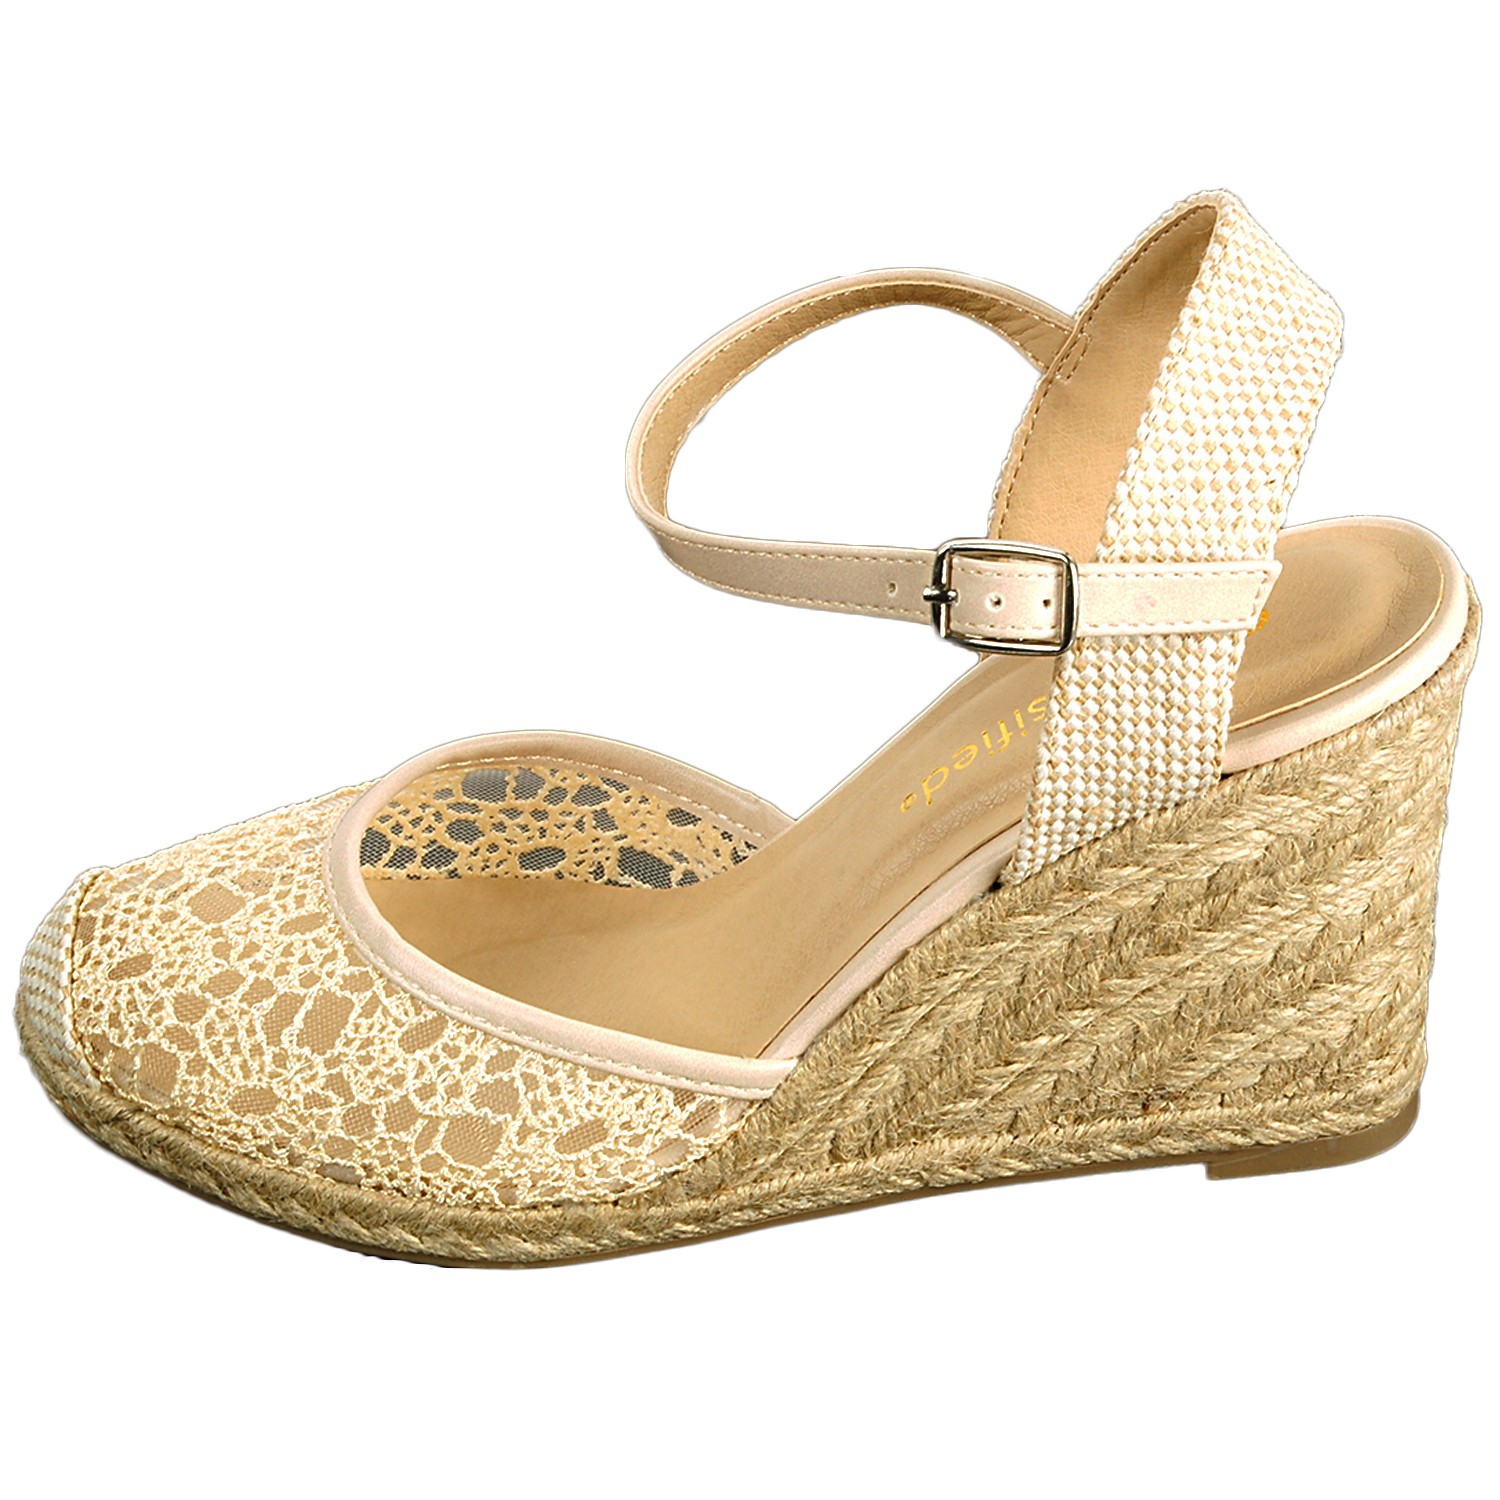 Find a great selection of women's wedges at newuz.tk Shop all the best brands and styles from TOMS, Sam Edelman, Steve Madden and more. Totally free shipping and returns.